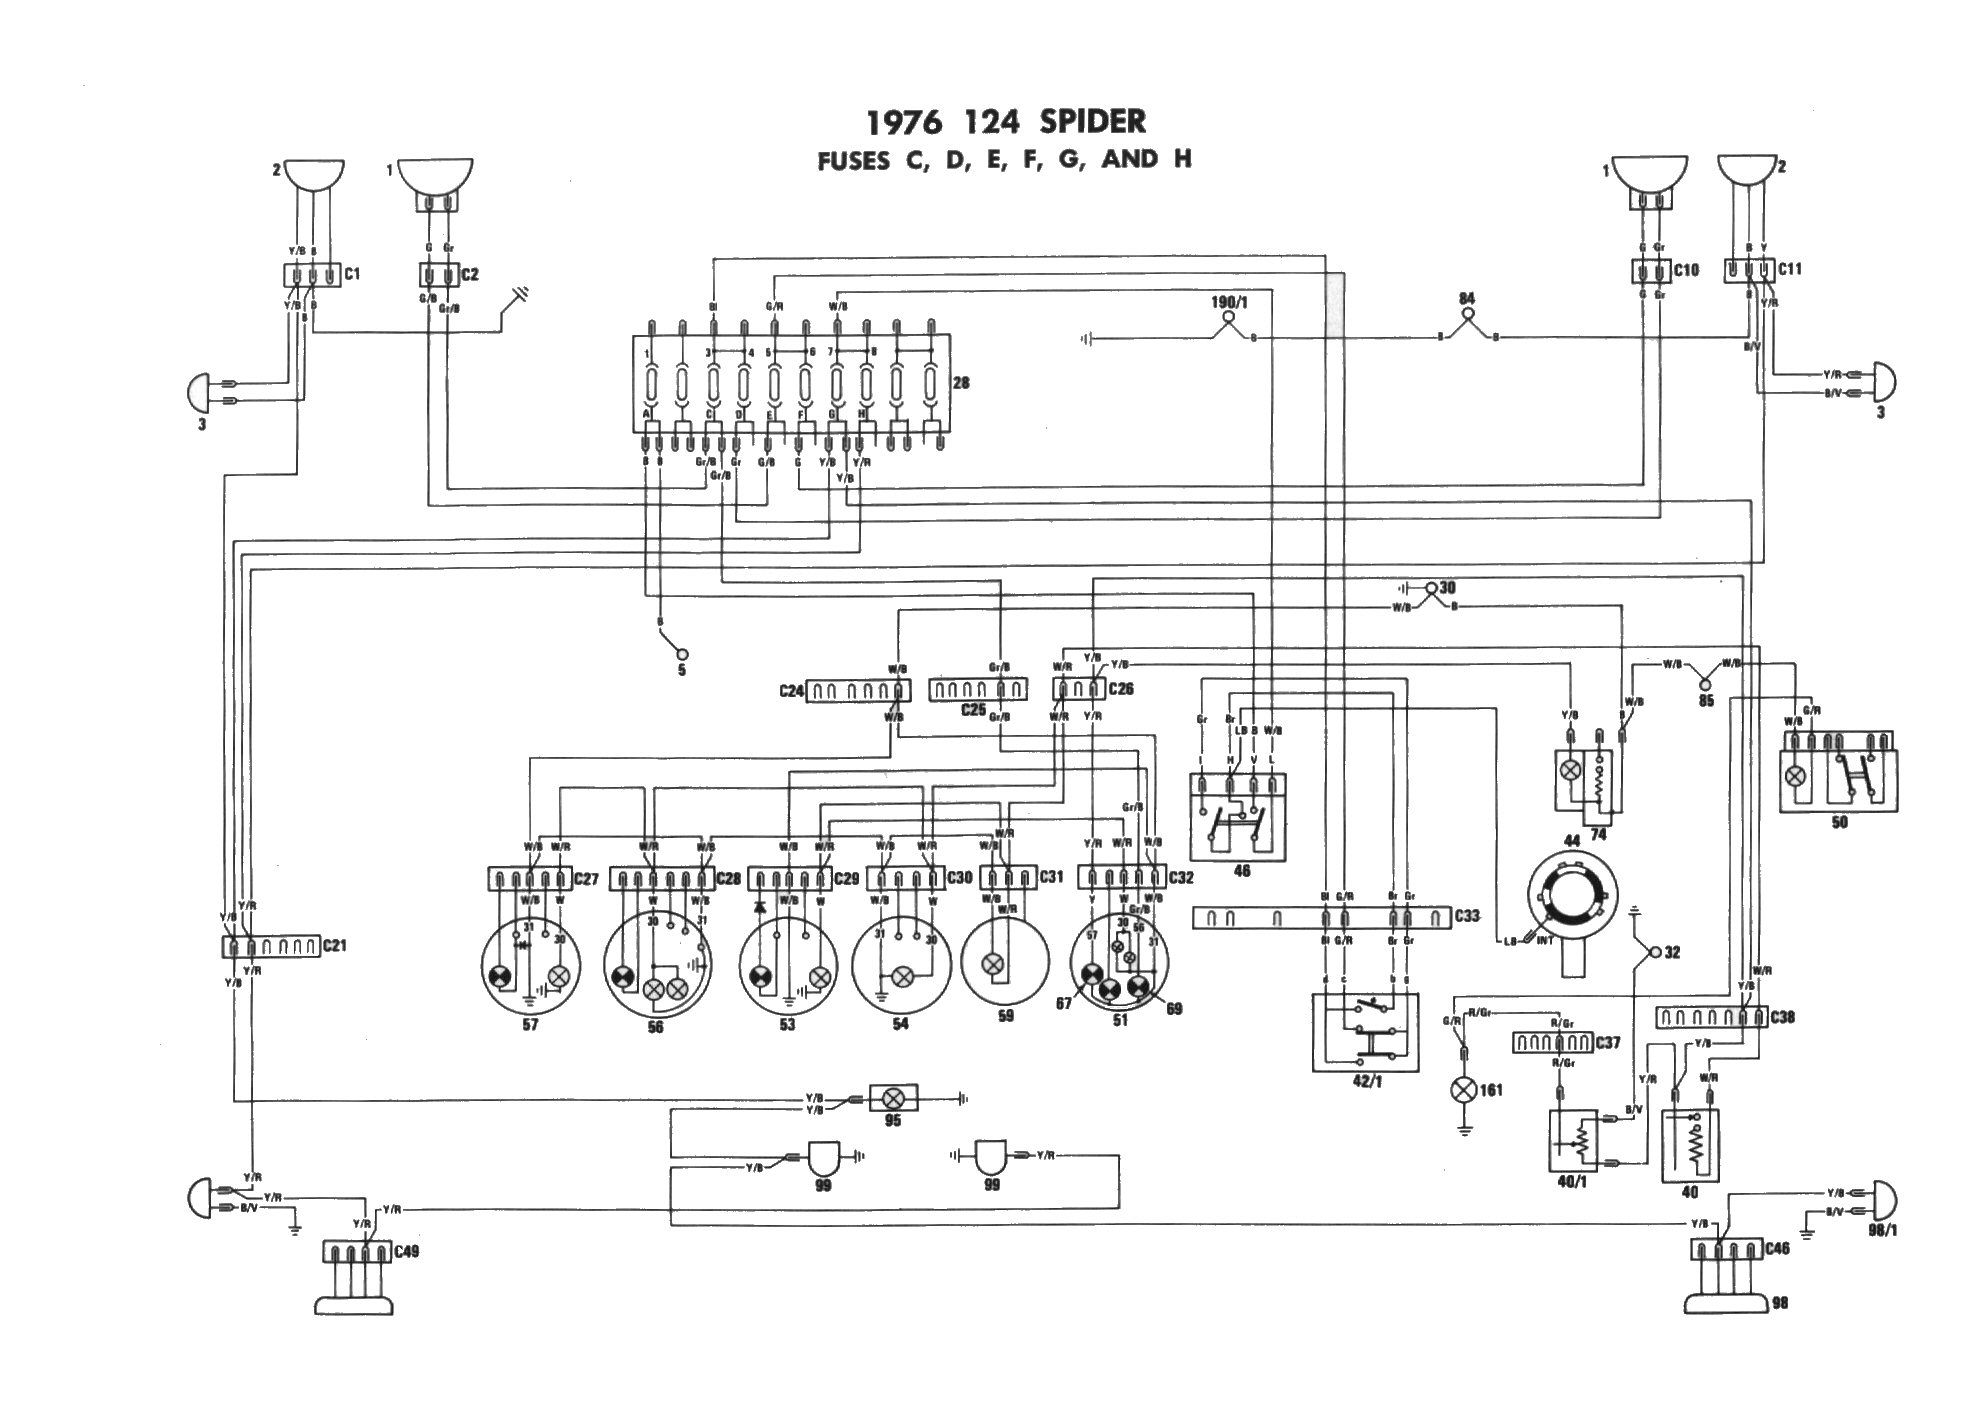 hight resolution of 1976 spider page 5